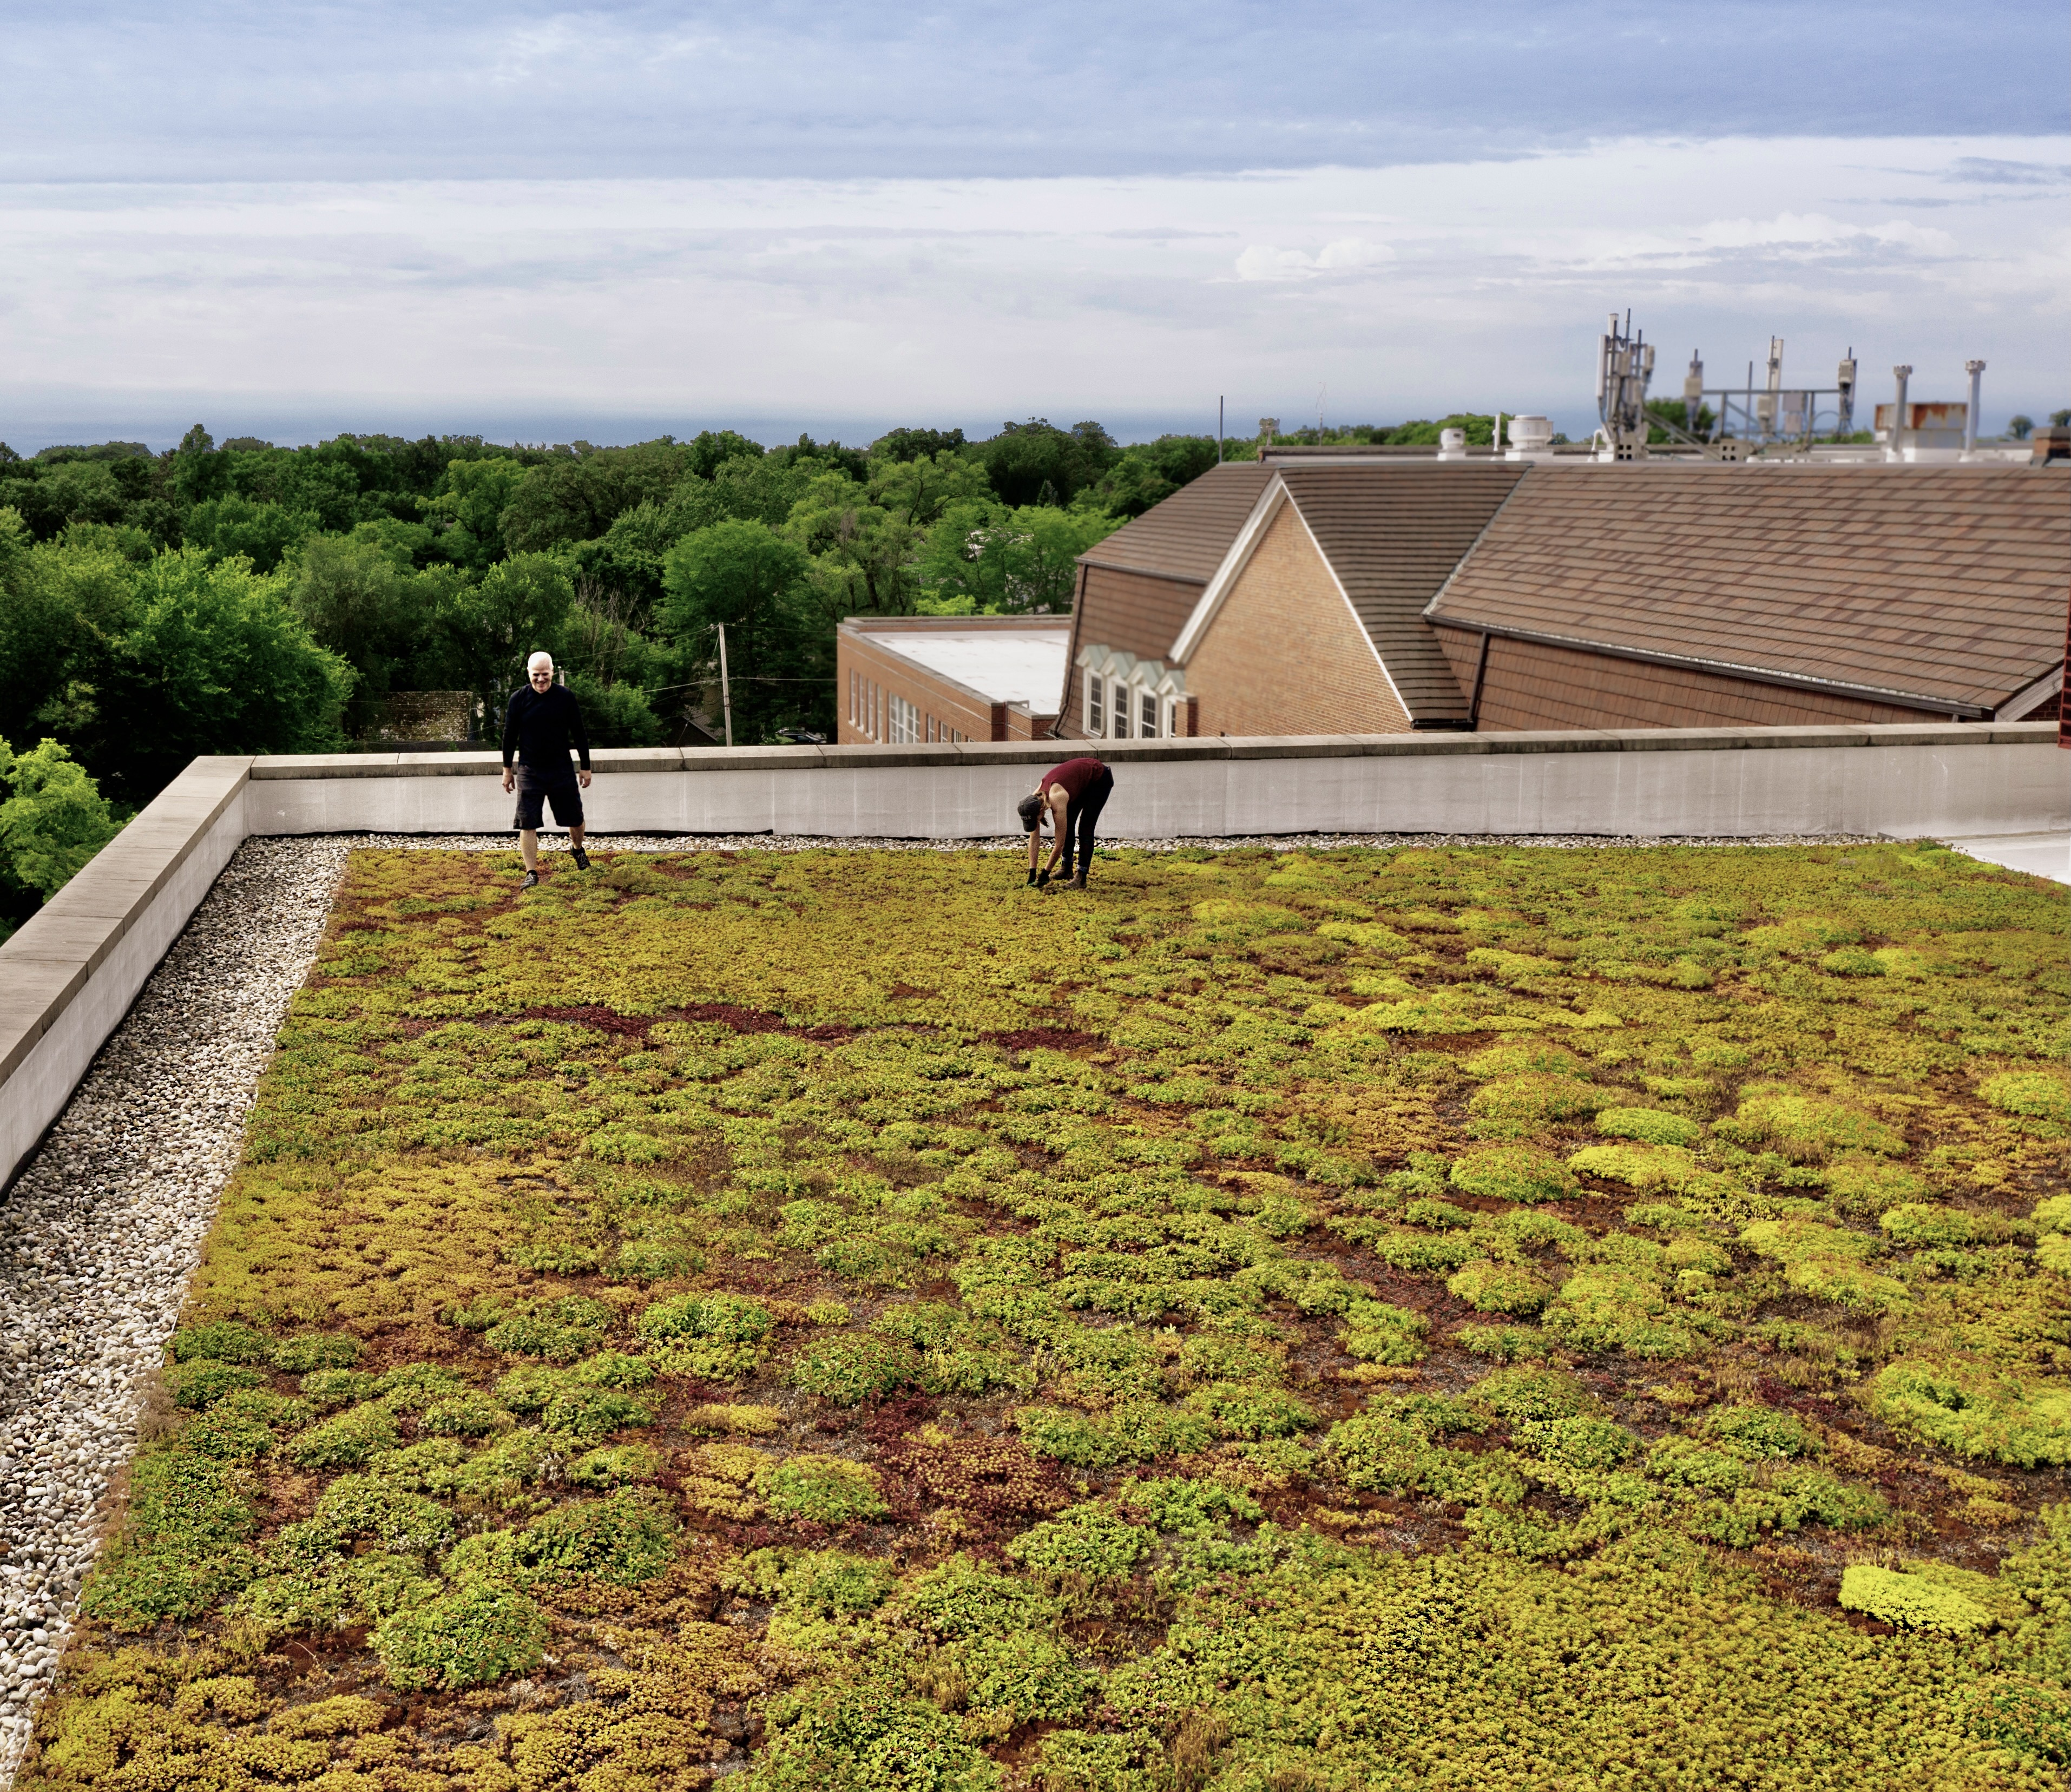 The Top 4 Questions for Green Roof Stewardship to Maximize ROI